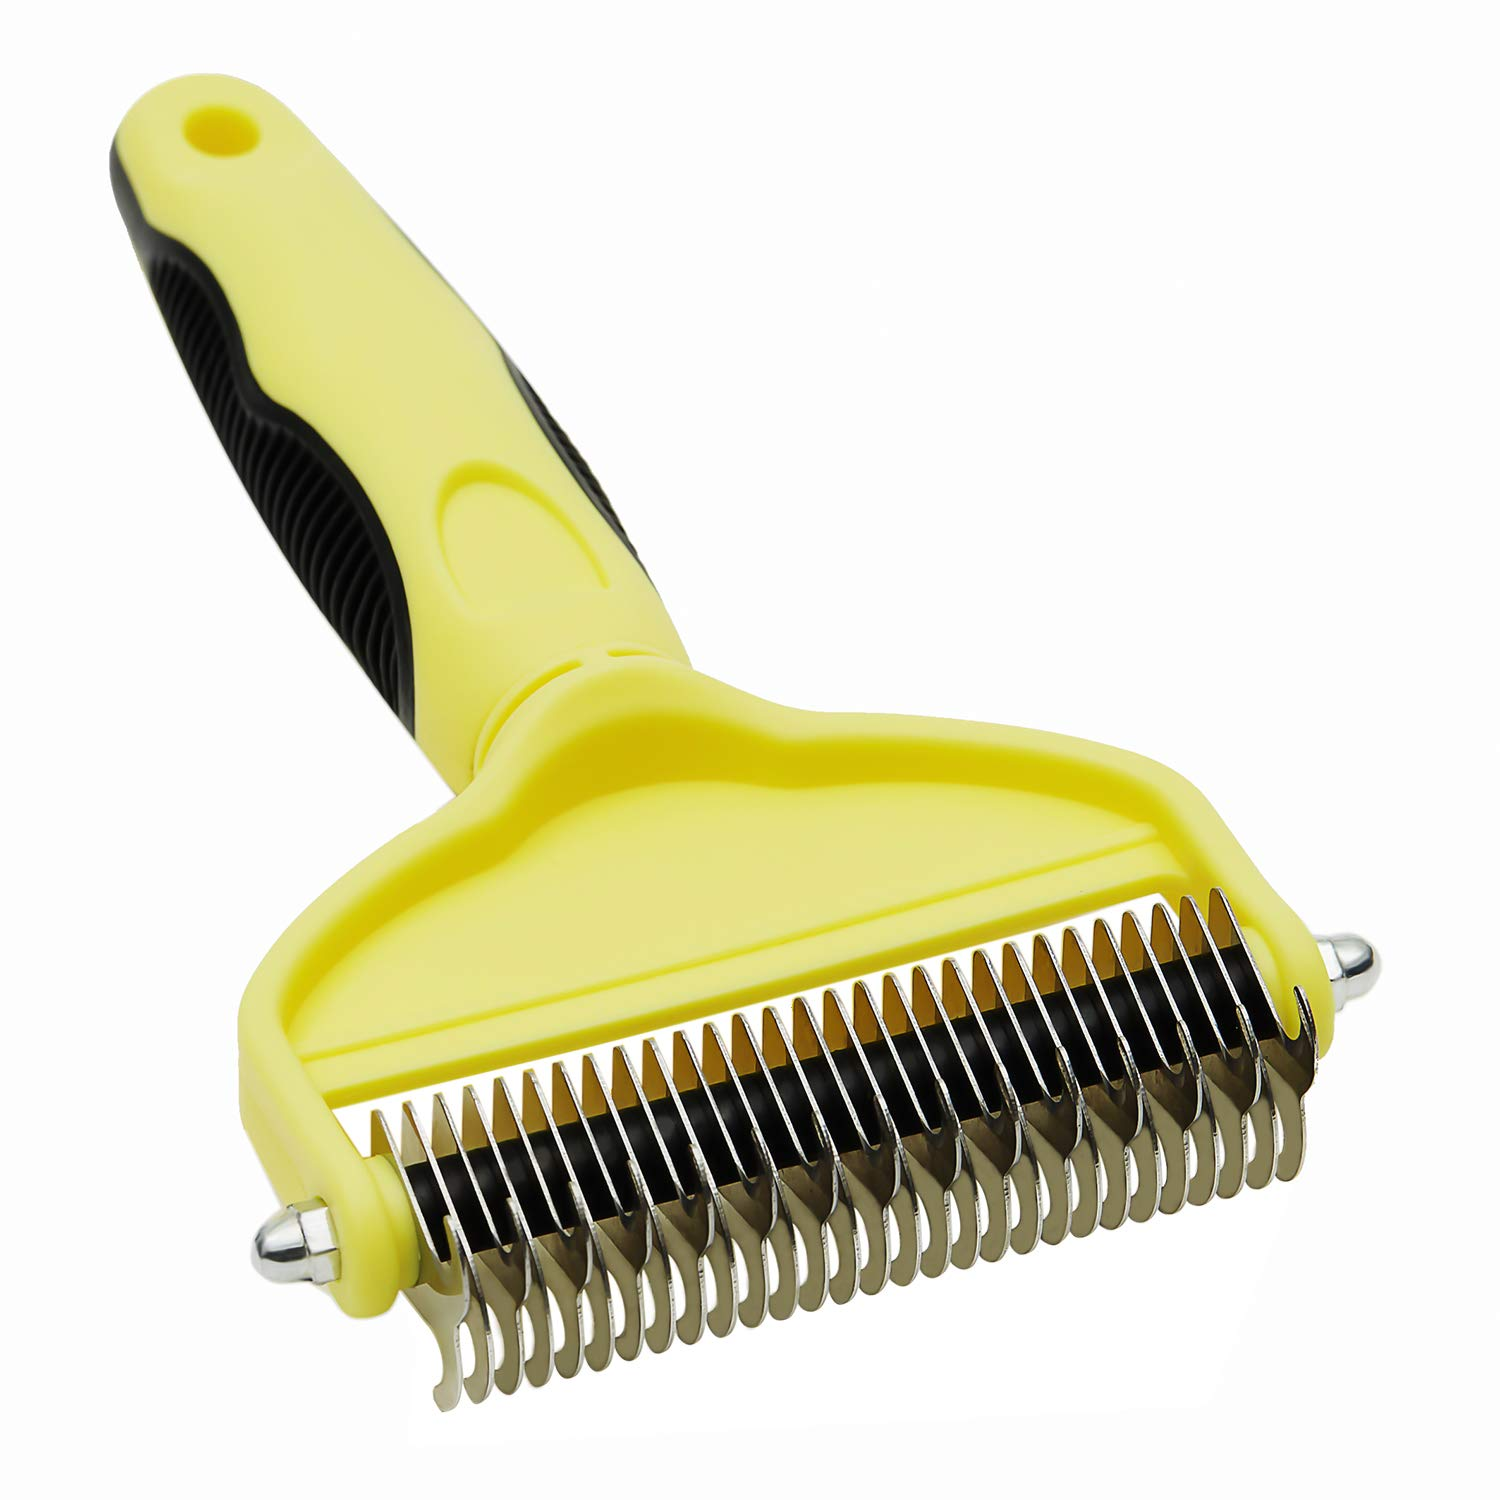 IPETSUN Dematting Comb,Pet Grooming Tool,2 Sided Undercoat Grooming Rake for Cats/Large Dogs, Safe Dematting Comb for Easy Mats & Tangles Removing【Upgraded Version】